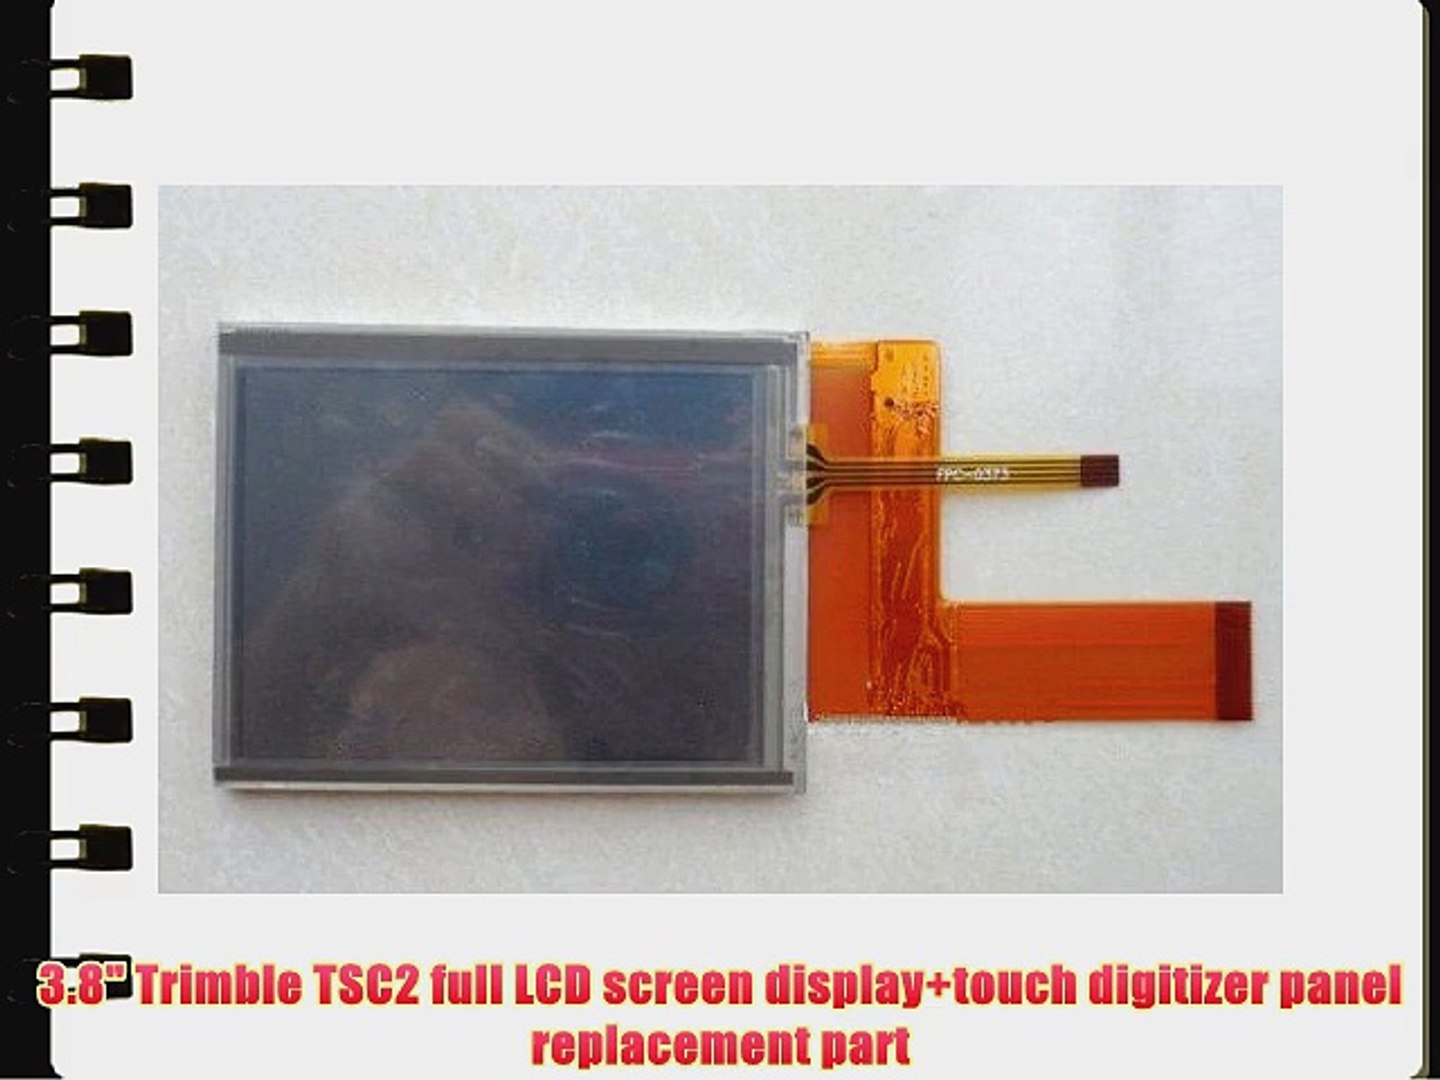 3 8 Trimble TSC2 full LCD screen display touch digitizer panel replacement  part